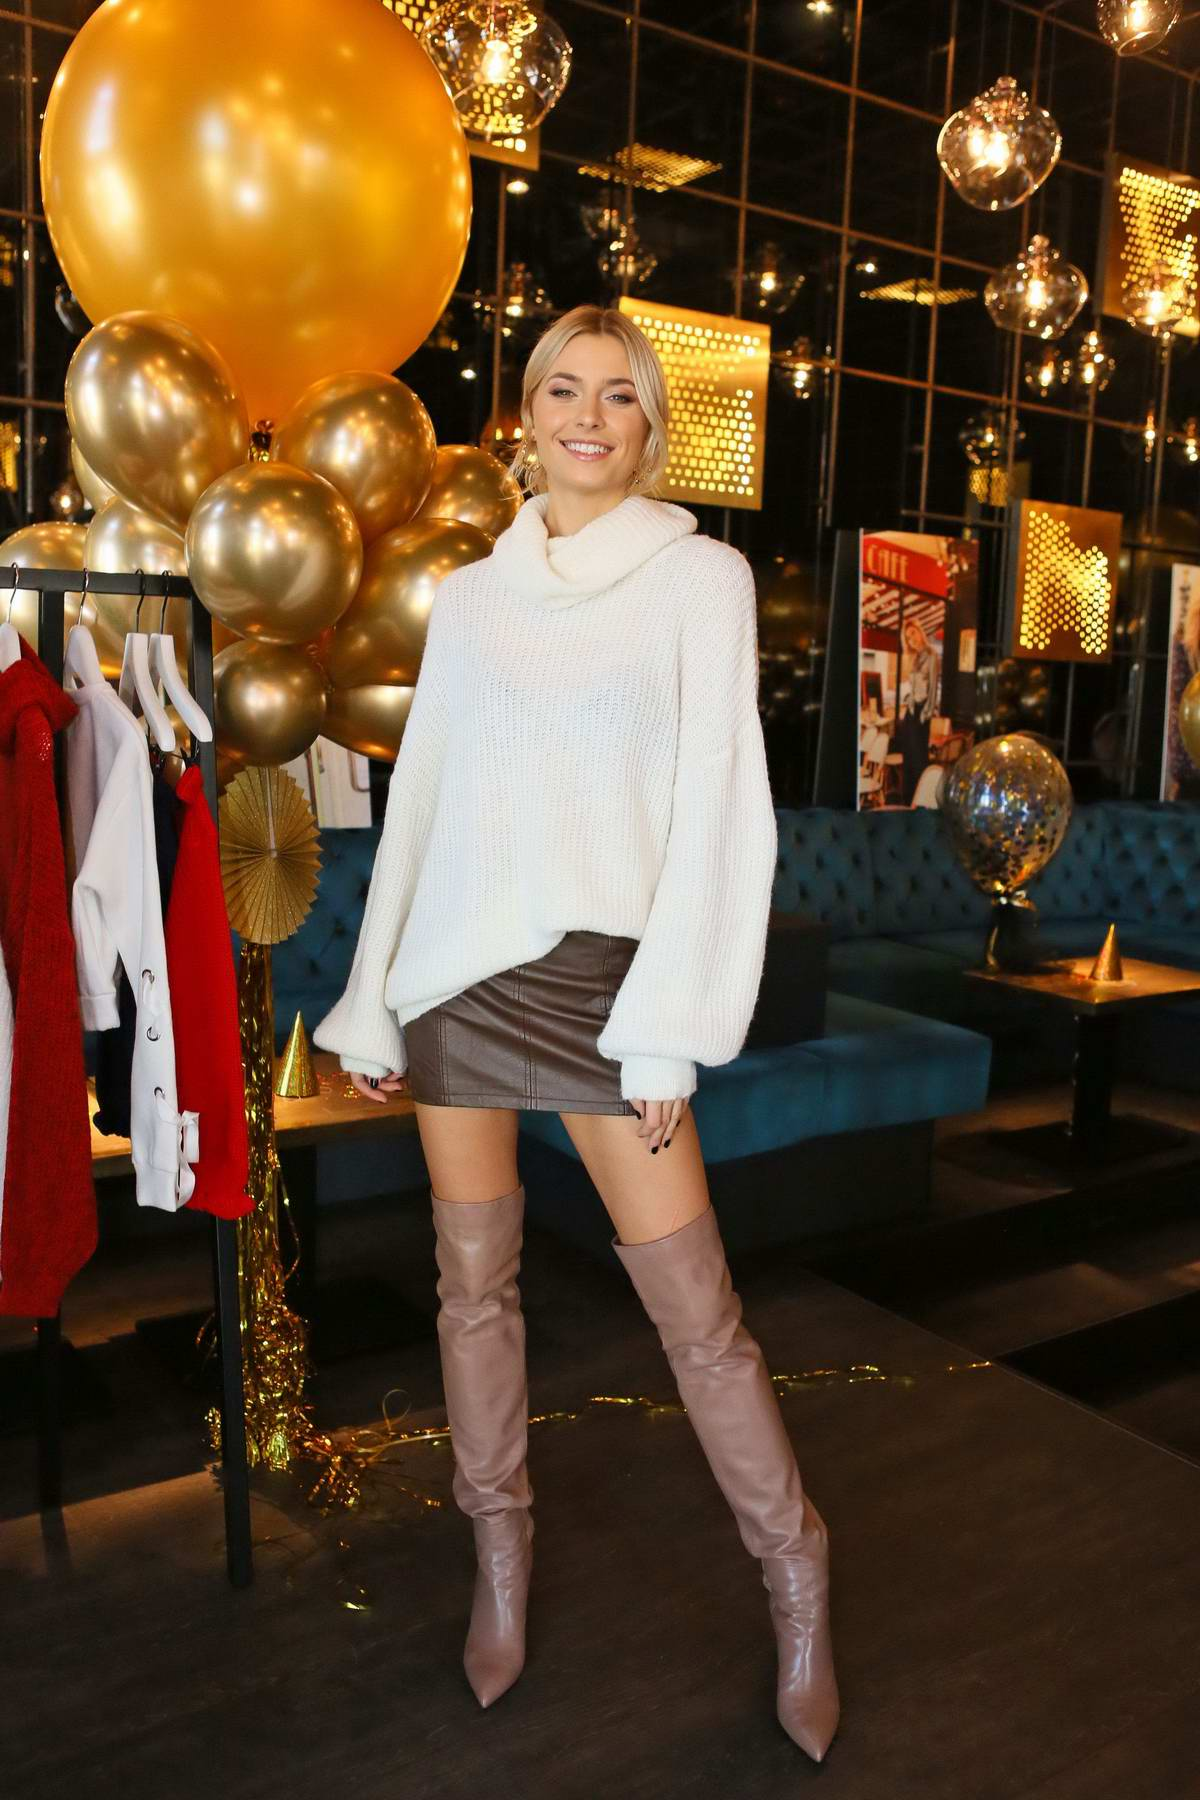 Lena Gercke attends the Festive Collection Presentation in Hamburg, Germany